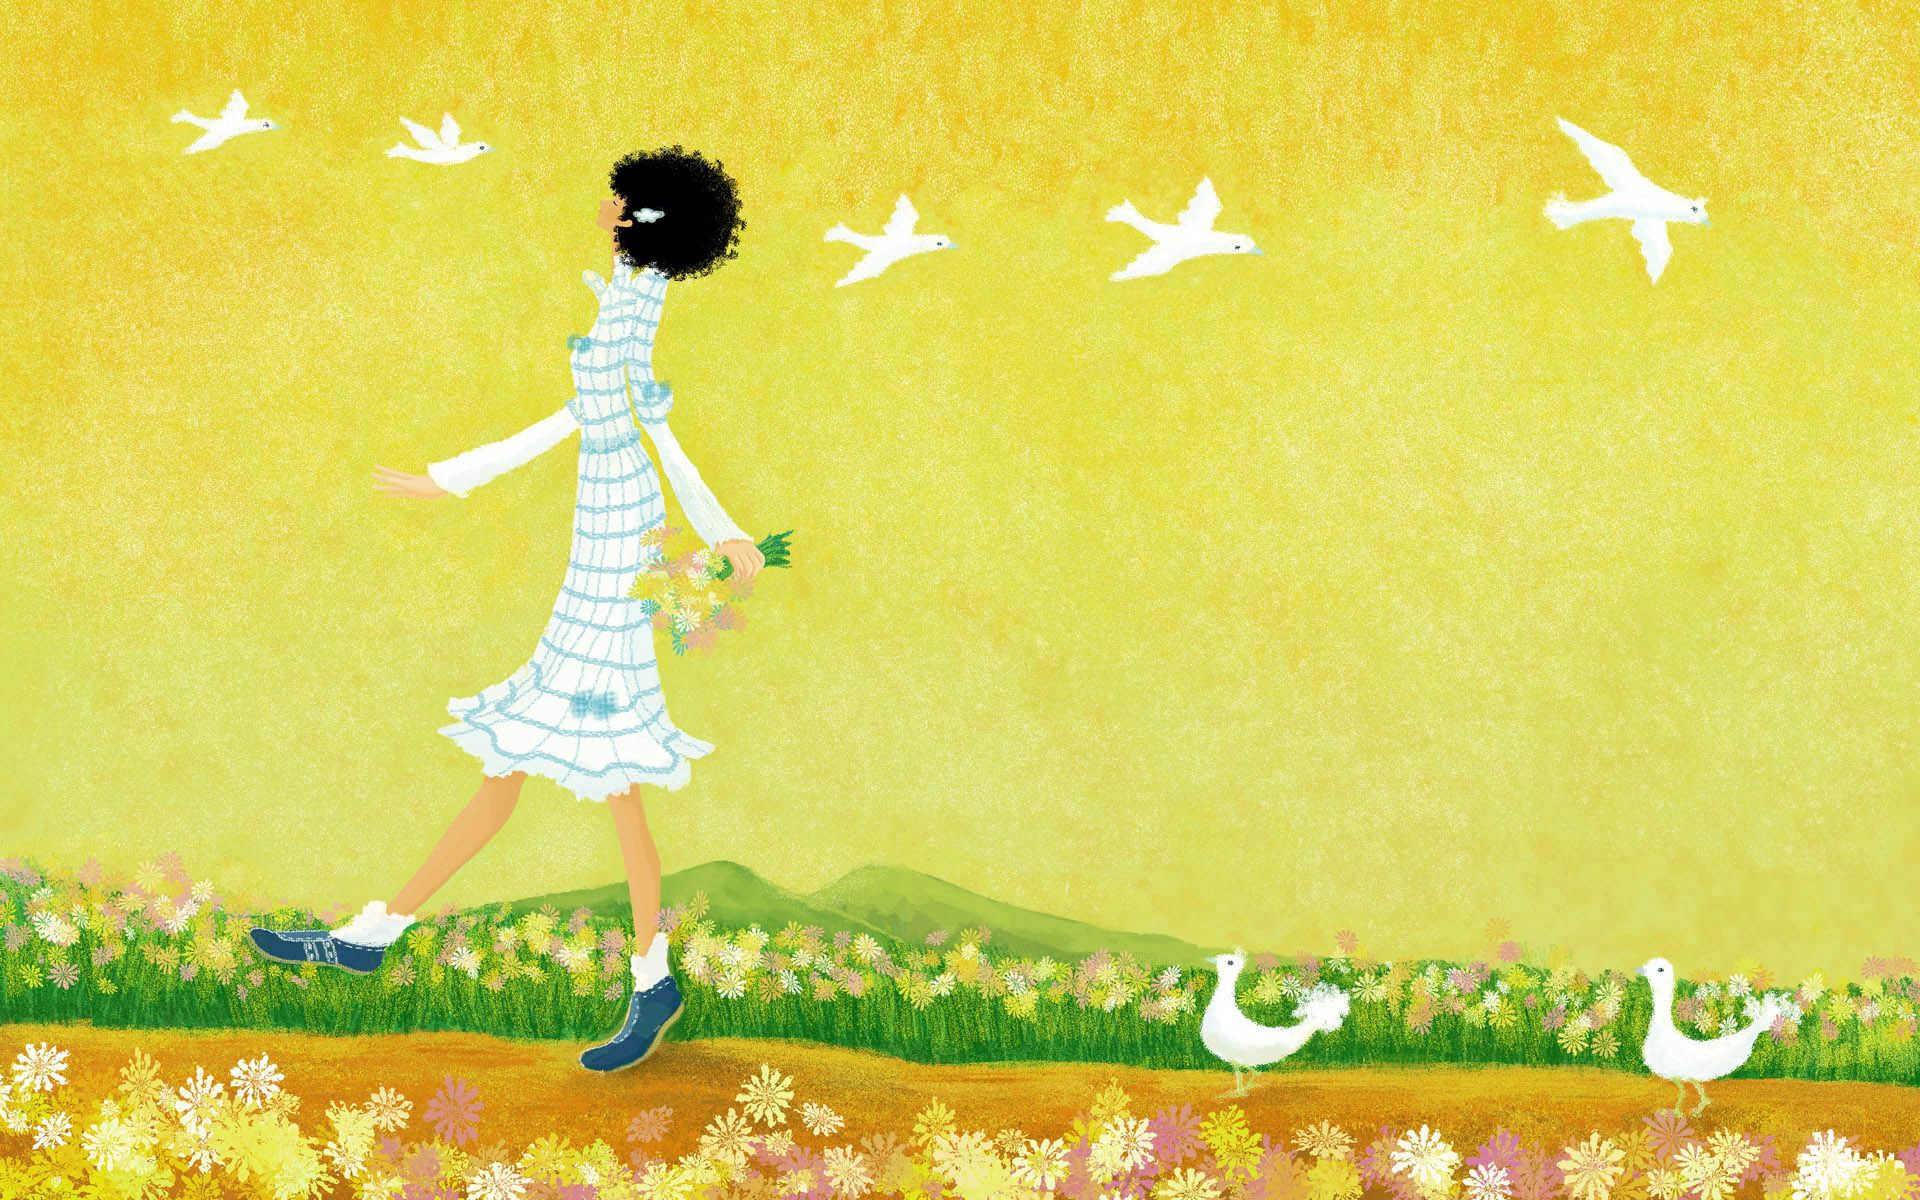 145975 download wallpaper Miscellanea, Miscellaneous, Girl, Stroll, Picture, Drawing, Nature screensavers and pictures for free